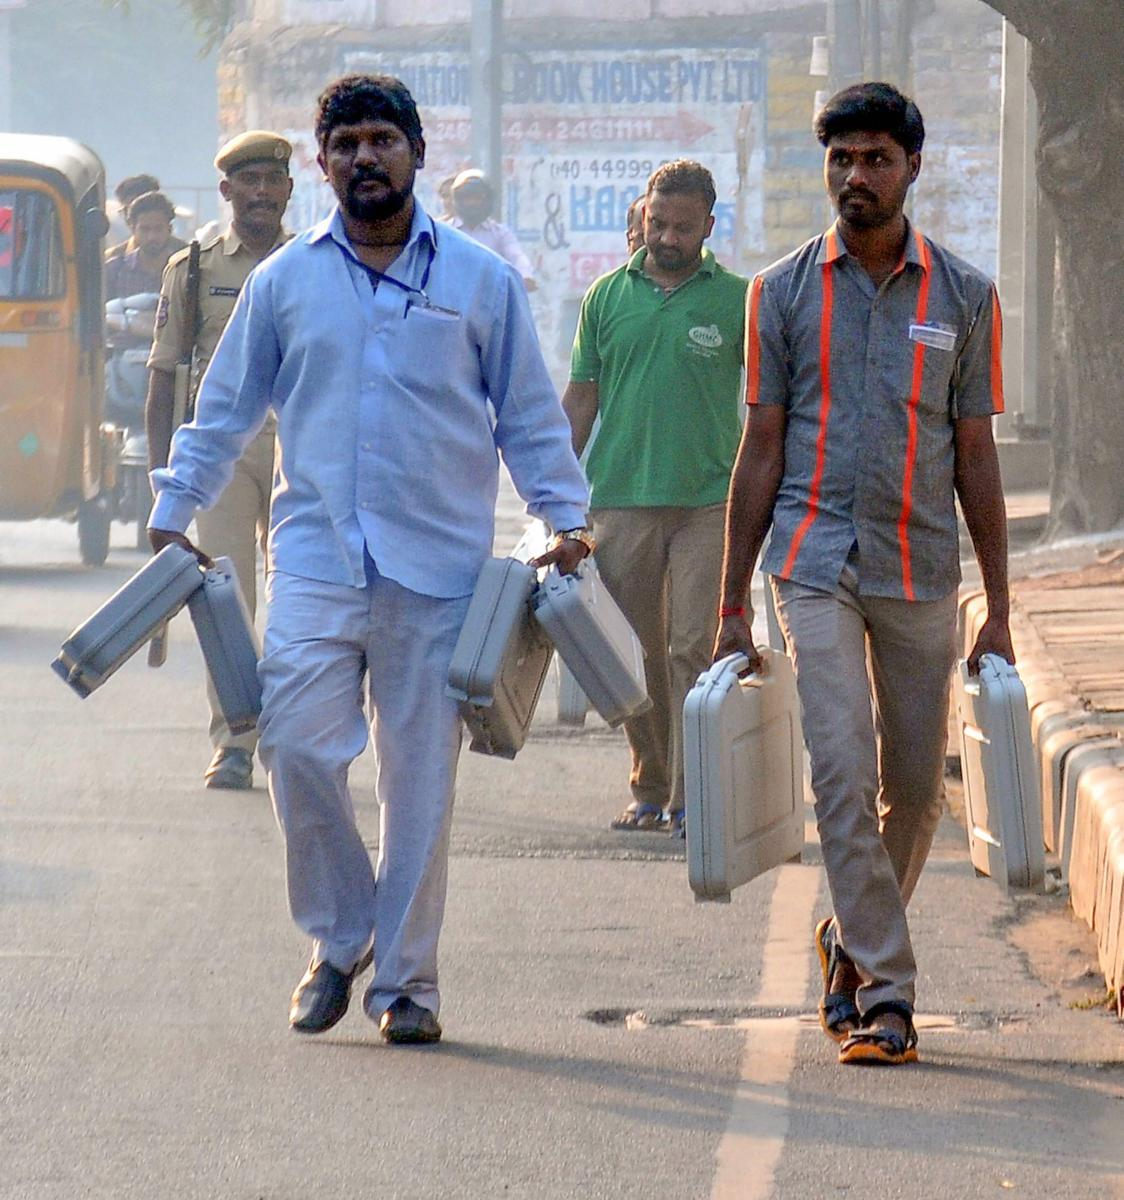 Polling officials carry EVMs to a polling station at Victory Playground, in Hyderabad, Thursday, Nov. 29, 2018. (PTI Photo)